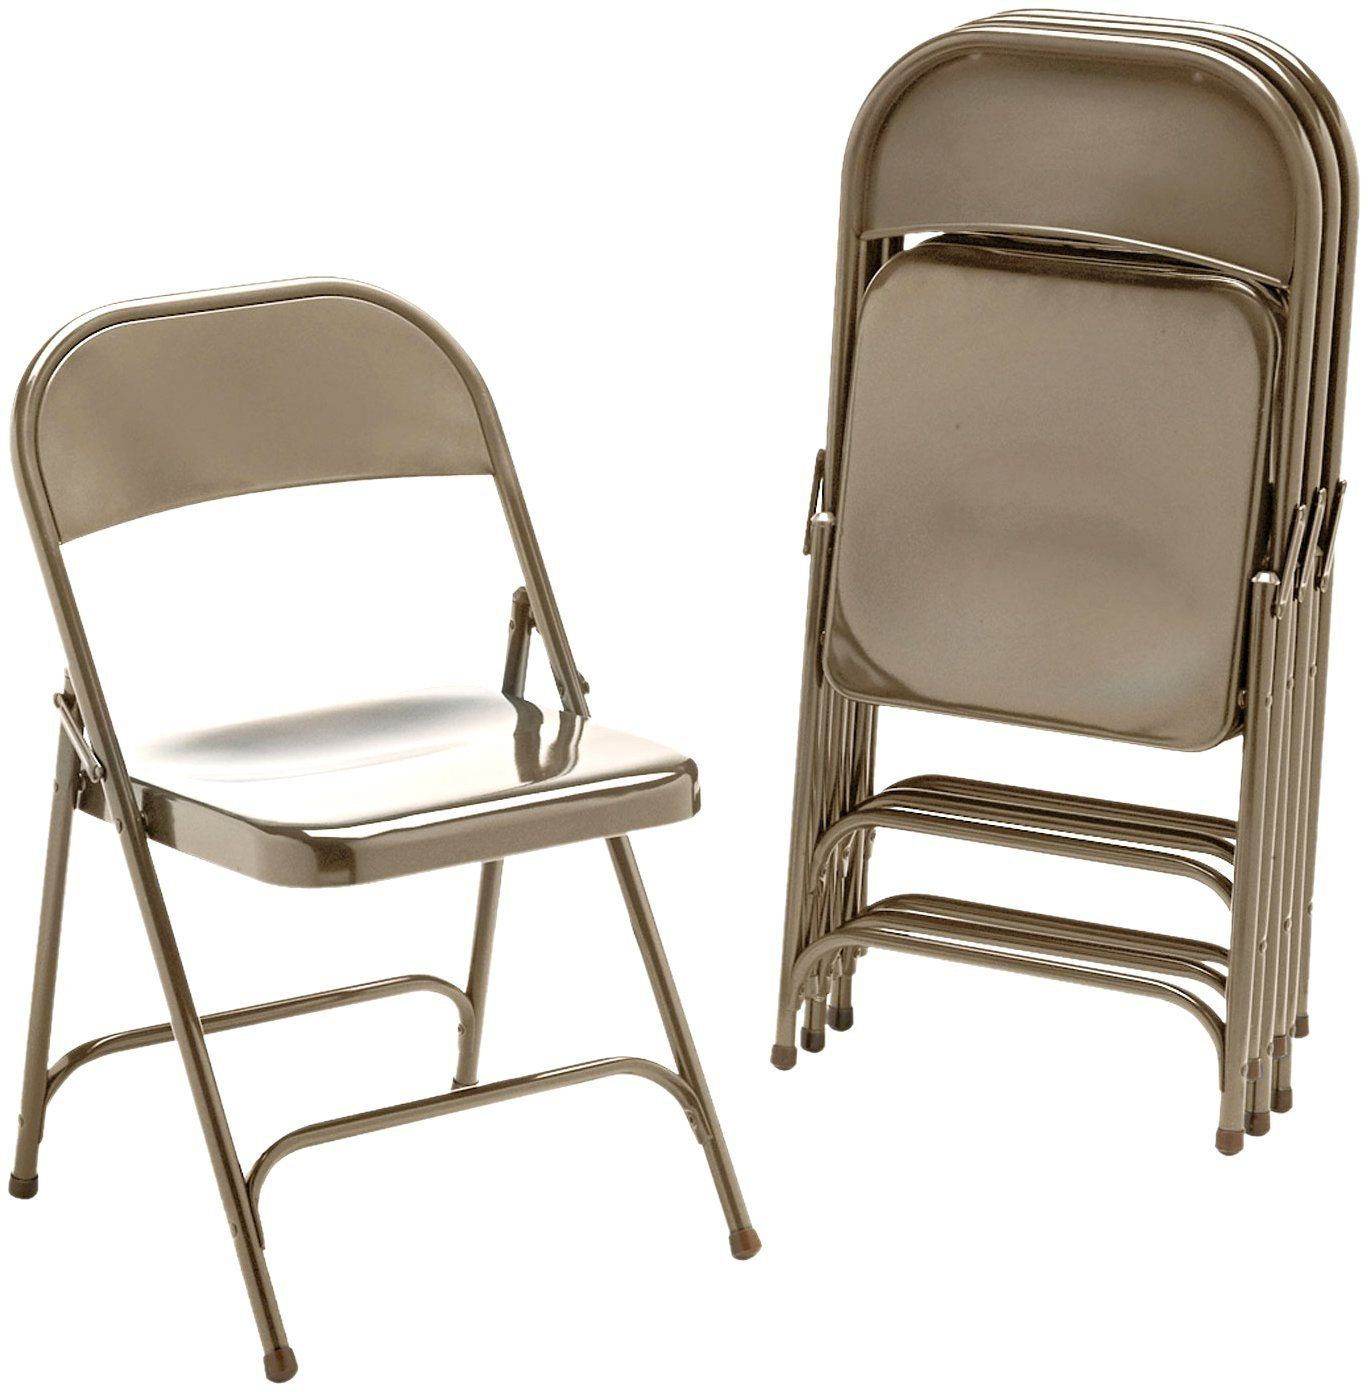 folding chair for adorable metal folding deck chairs   al folding